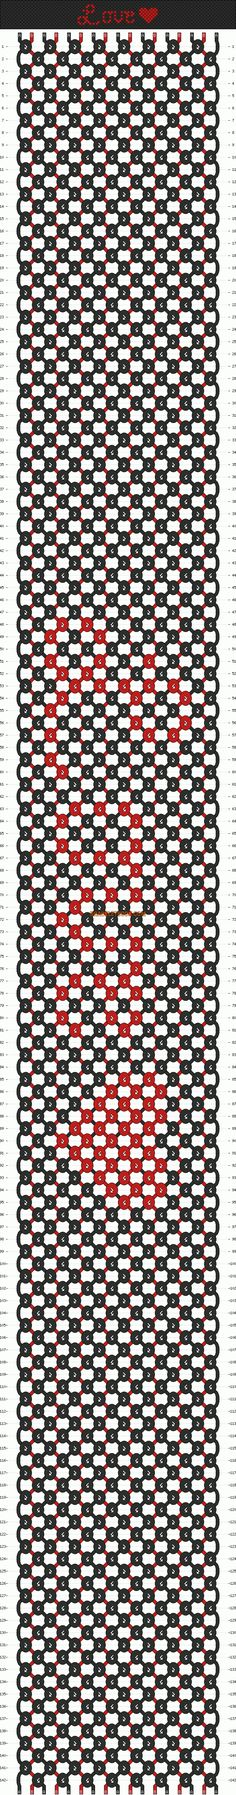 Normal Pattern #11368 added by CWillard